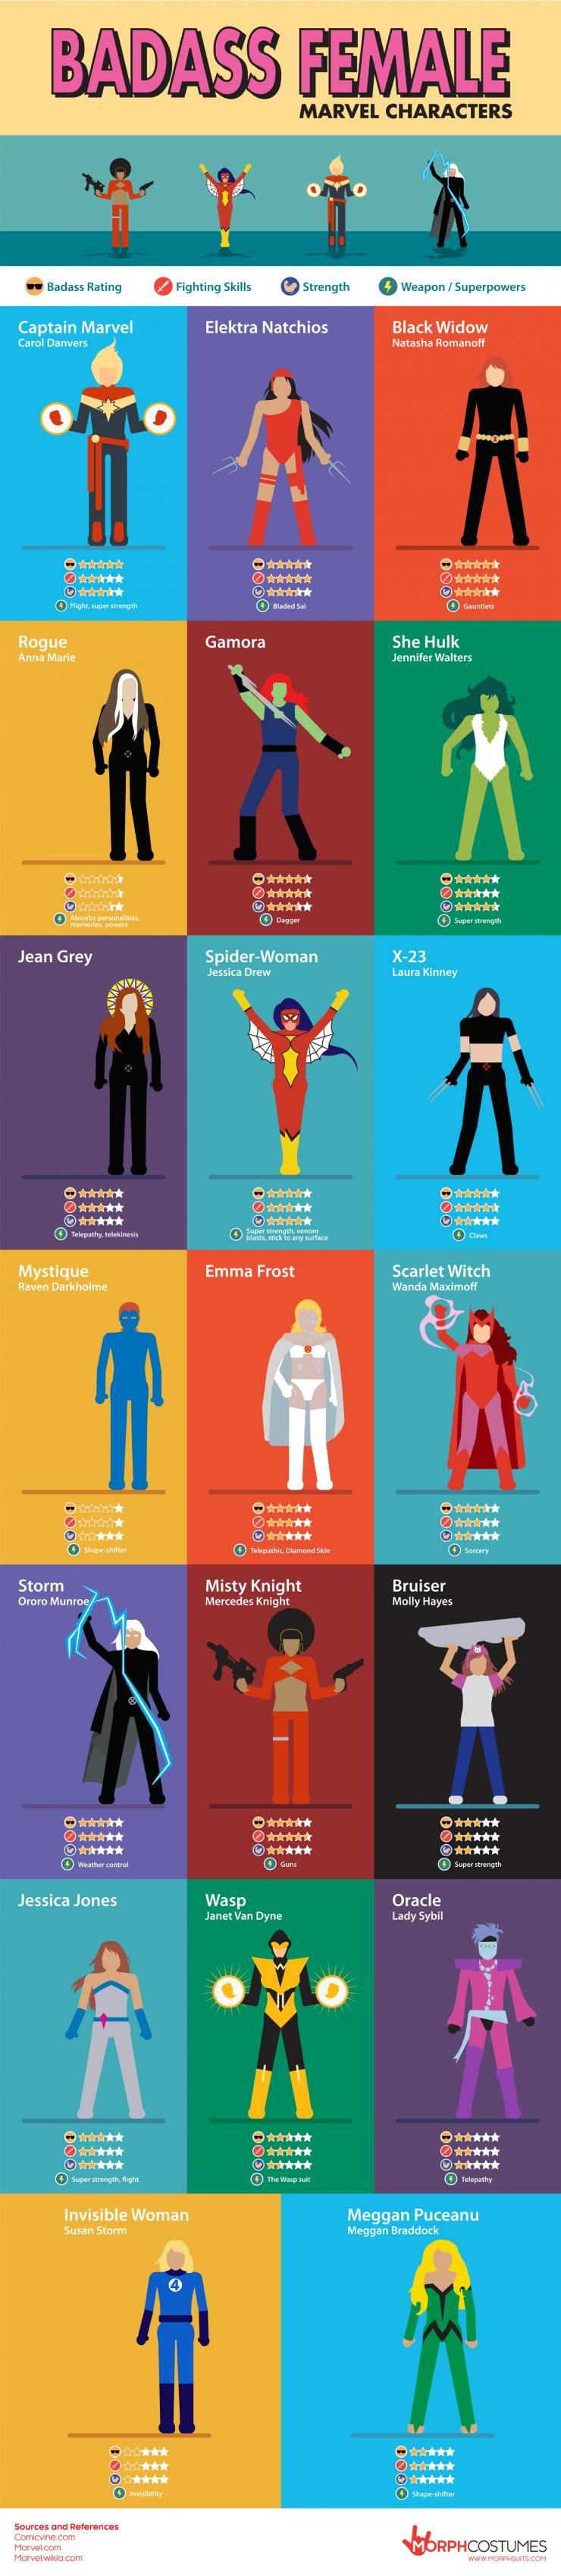 Badass Female Marvel Superheroes From Captain Marvel To Jean Grey Who S The Baddest Of Them All Infographic Marvel Female Characters Marvel Superheroes Female Marvel Superheroes